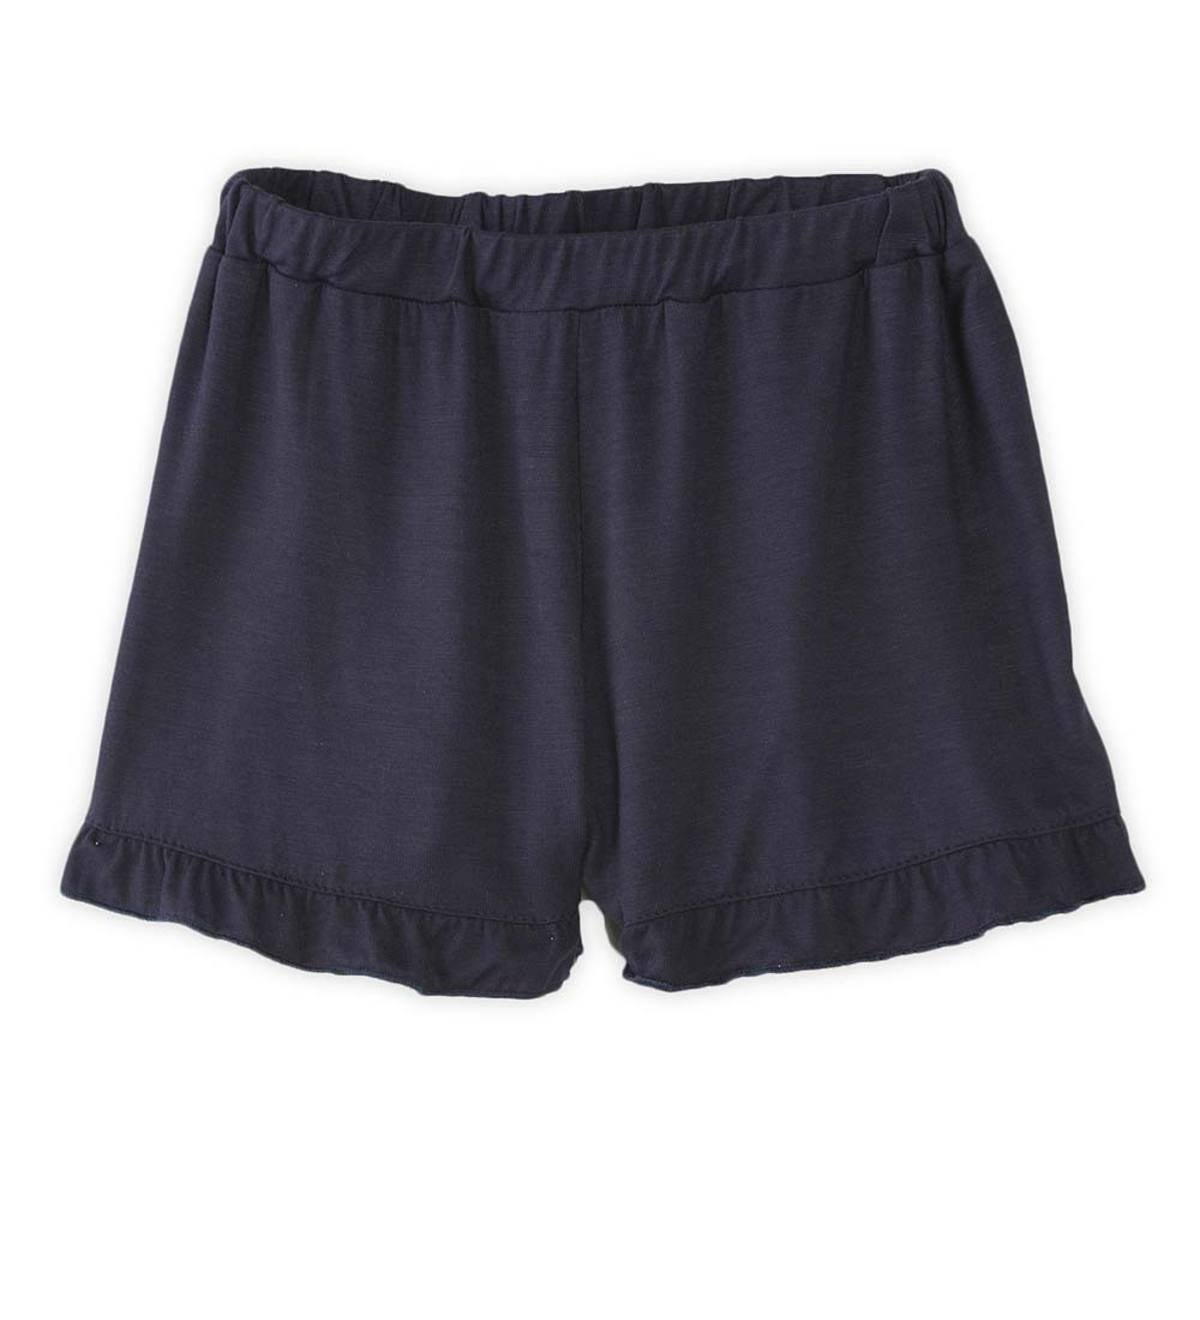 Solid Shorts with Ruffle Hem - NY - 6